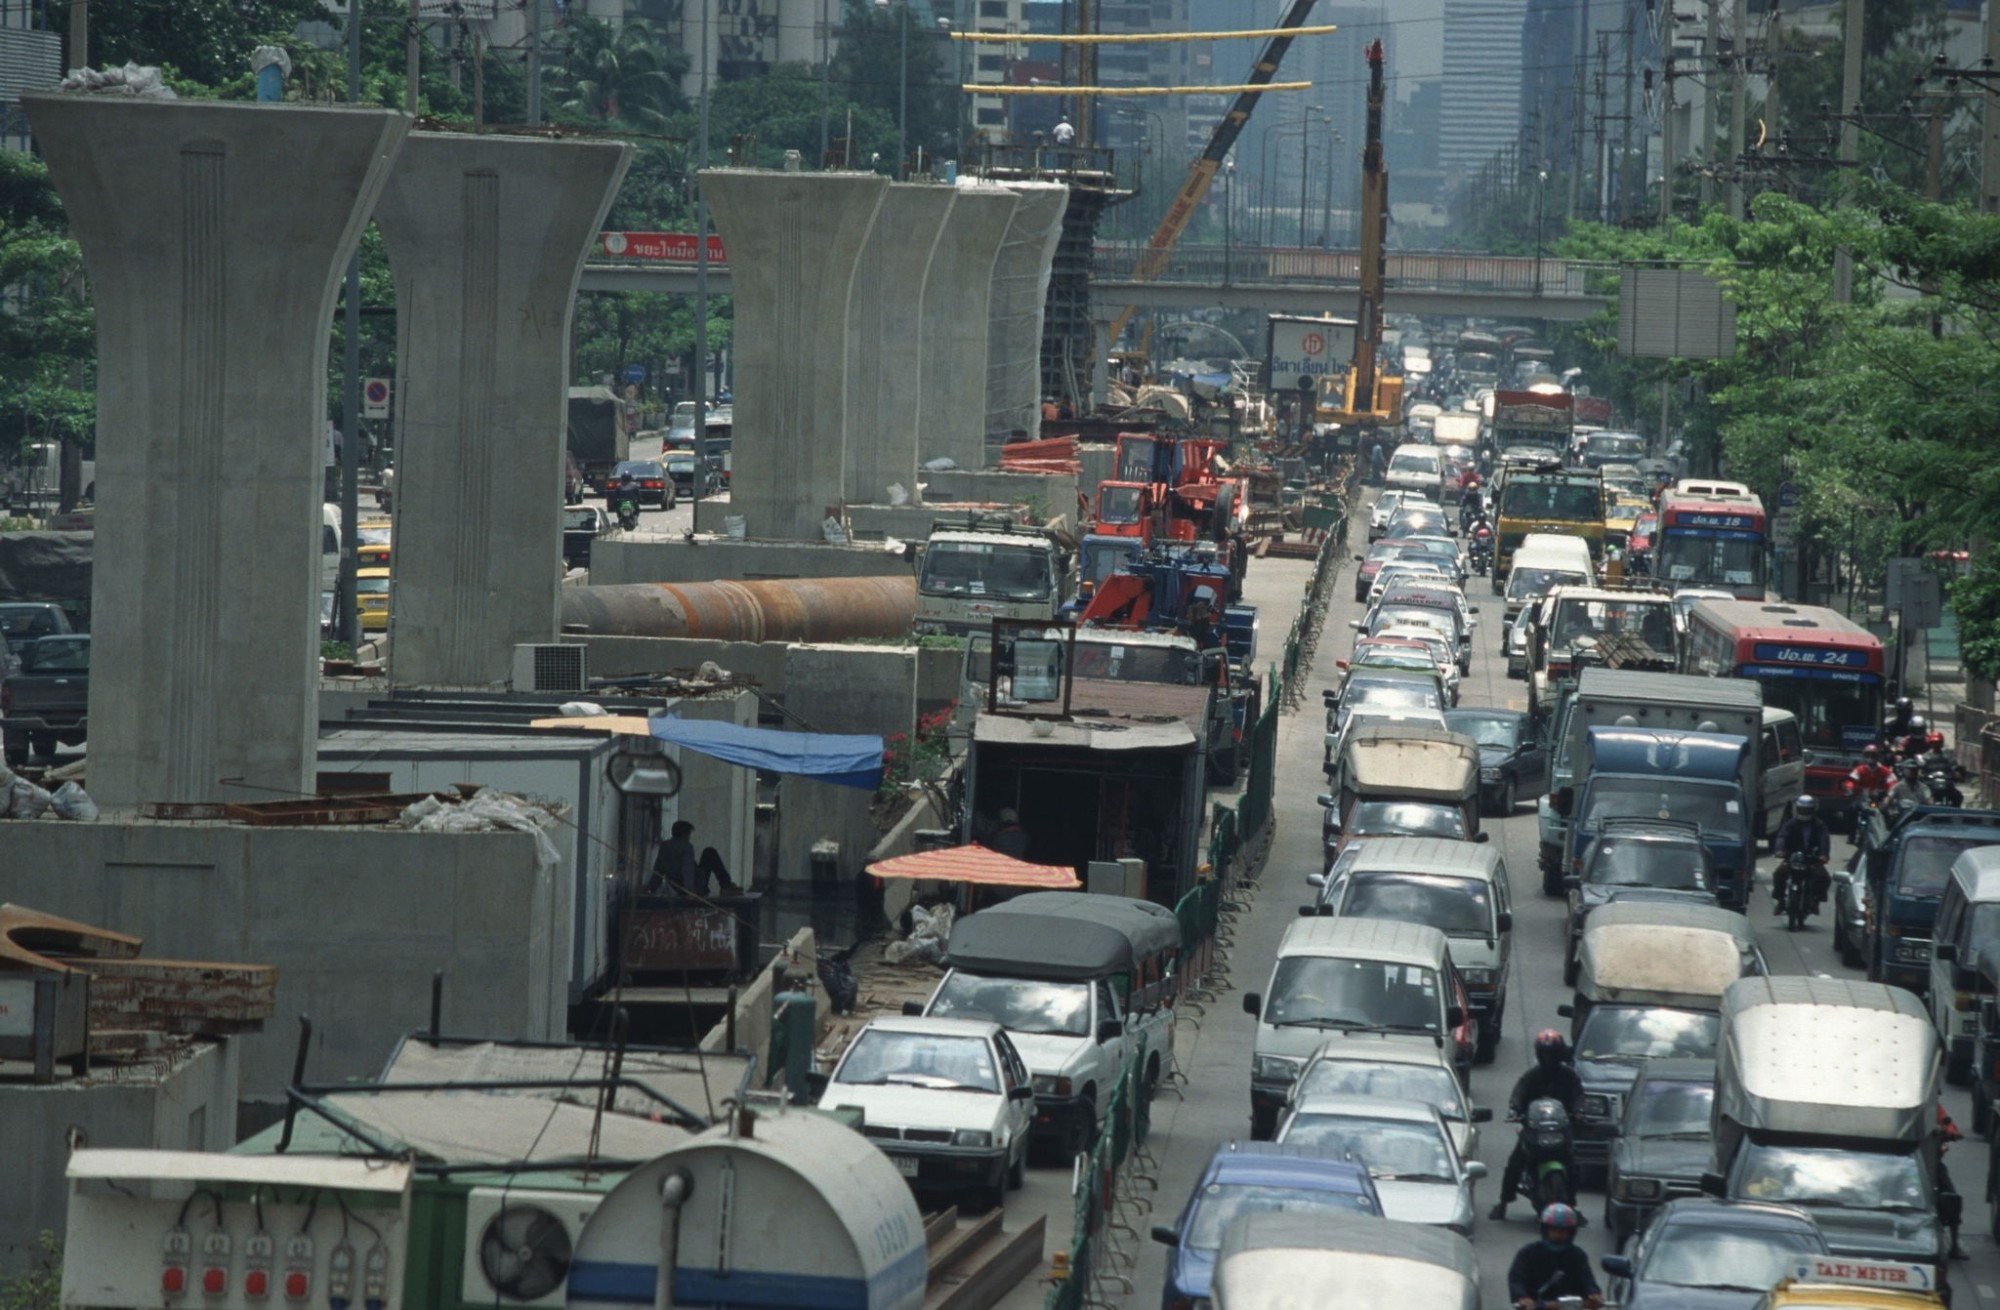 1999 Bangkok Traffic chaos caused by the construction of elevated mass transit rail system known as the Sky train